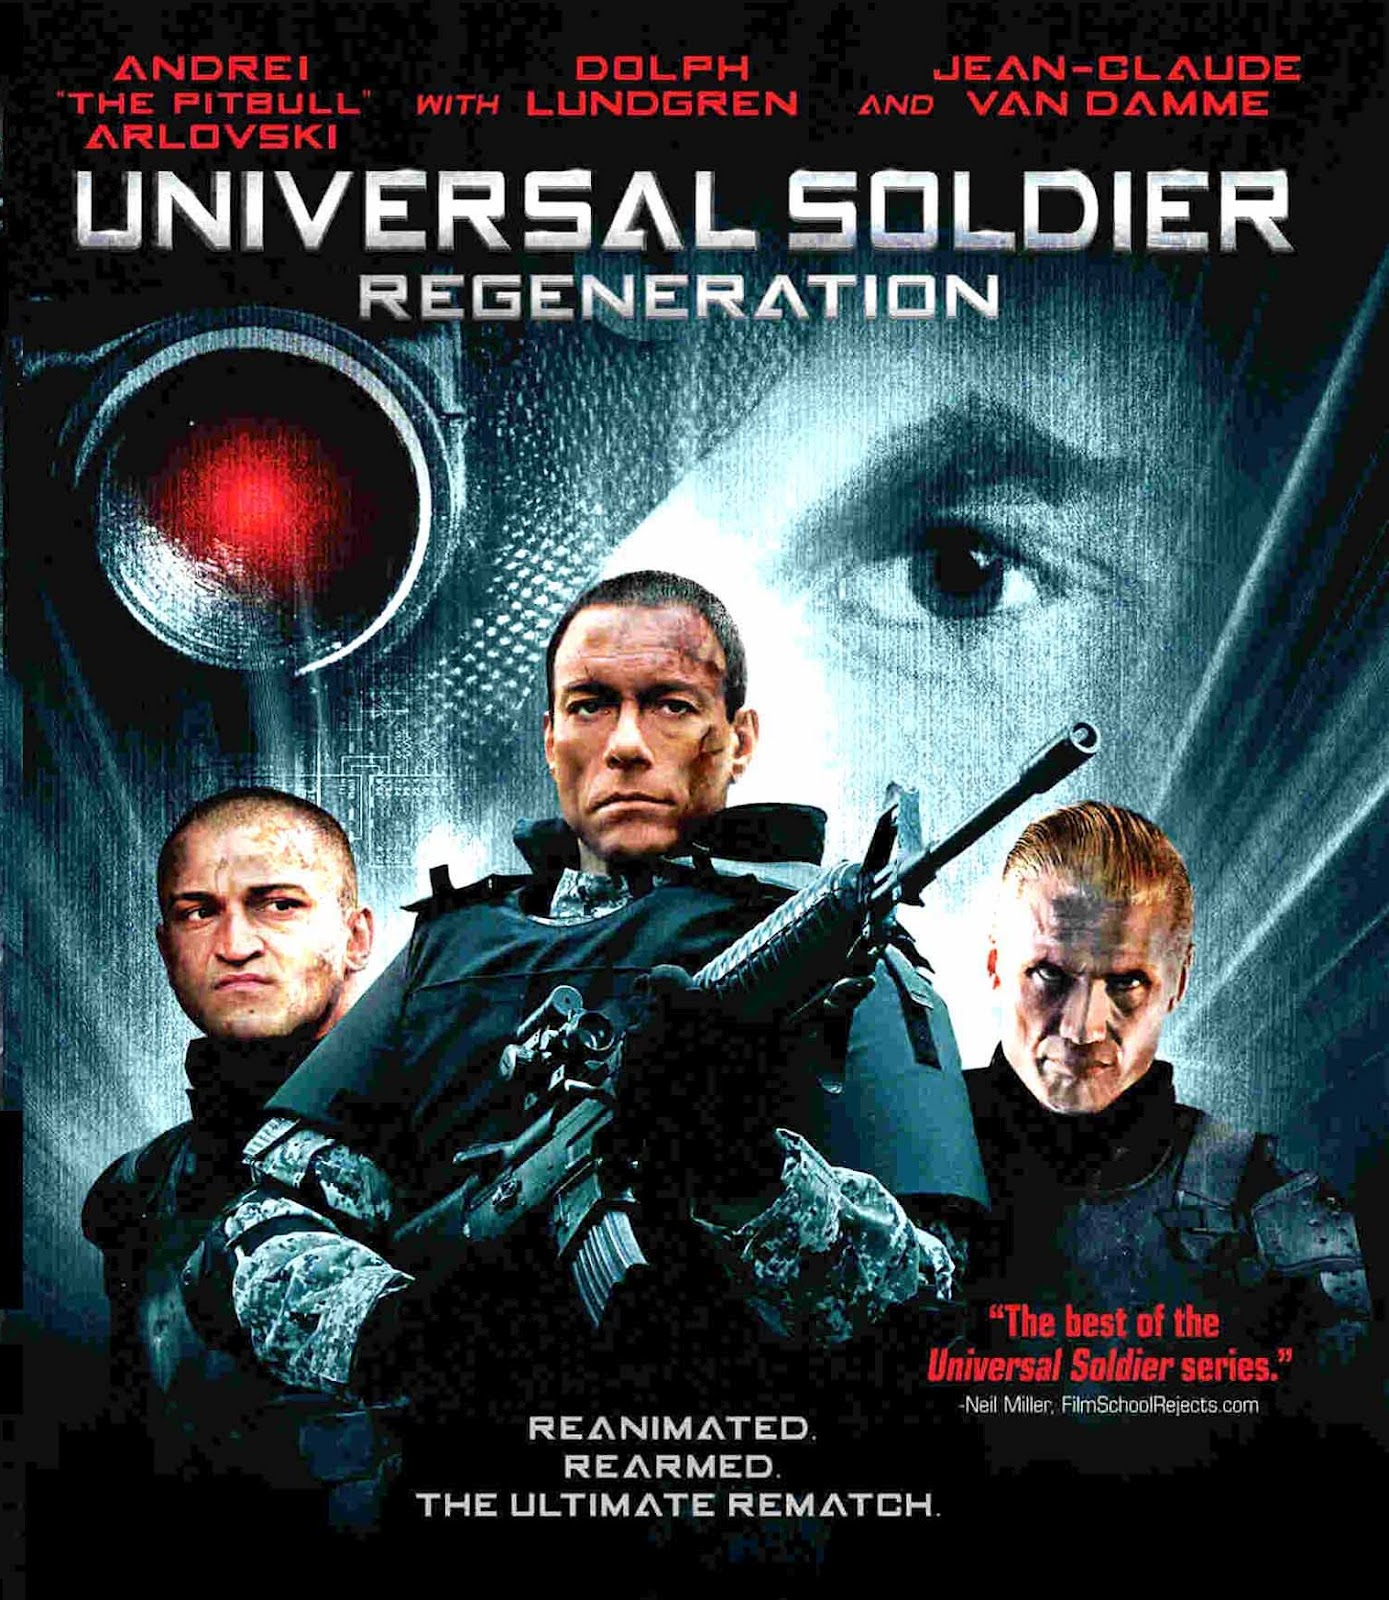 Universal Soldier: Regeneration with Van Damme, Dolph Lundgren and Andrei Arlovski